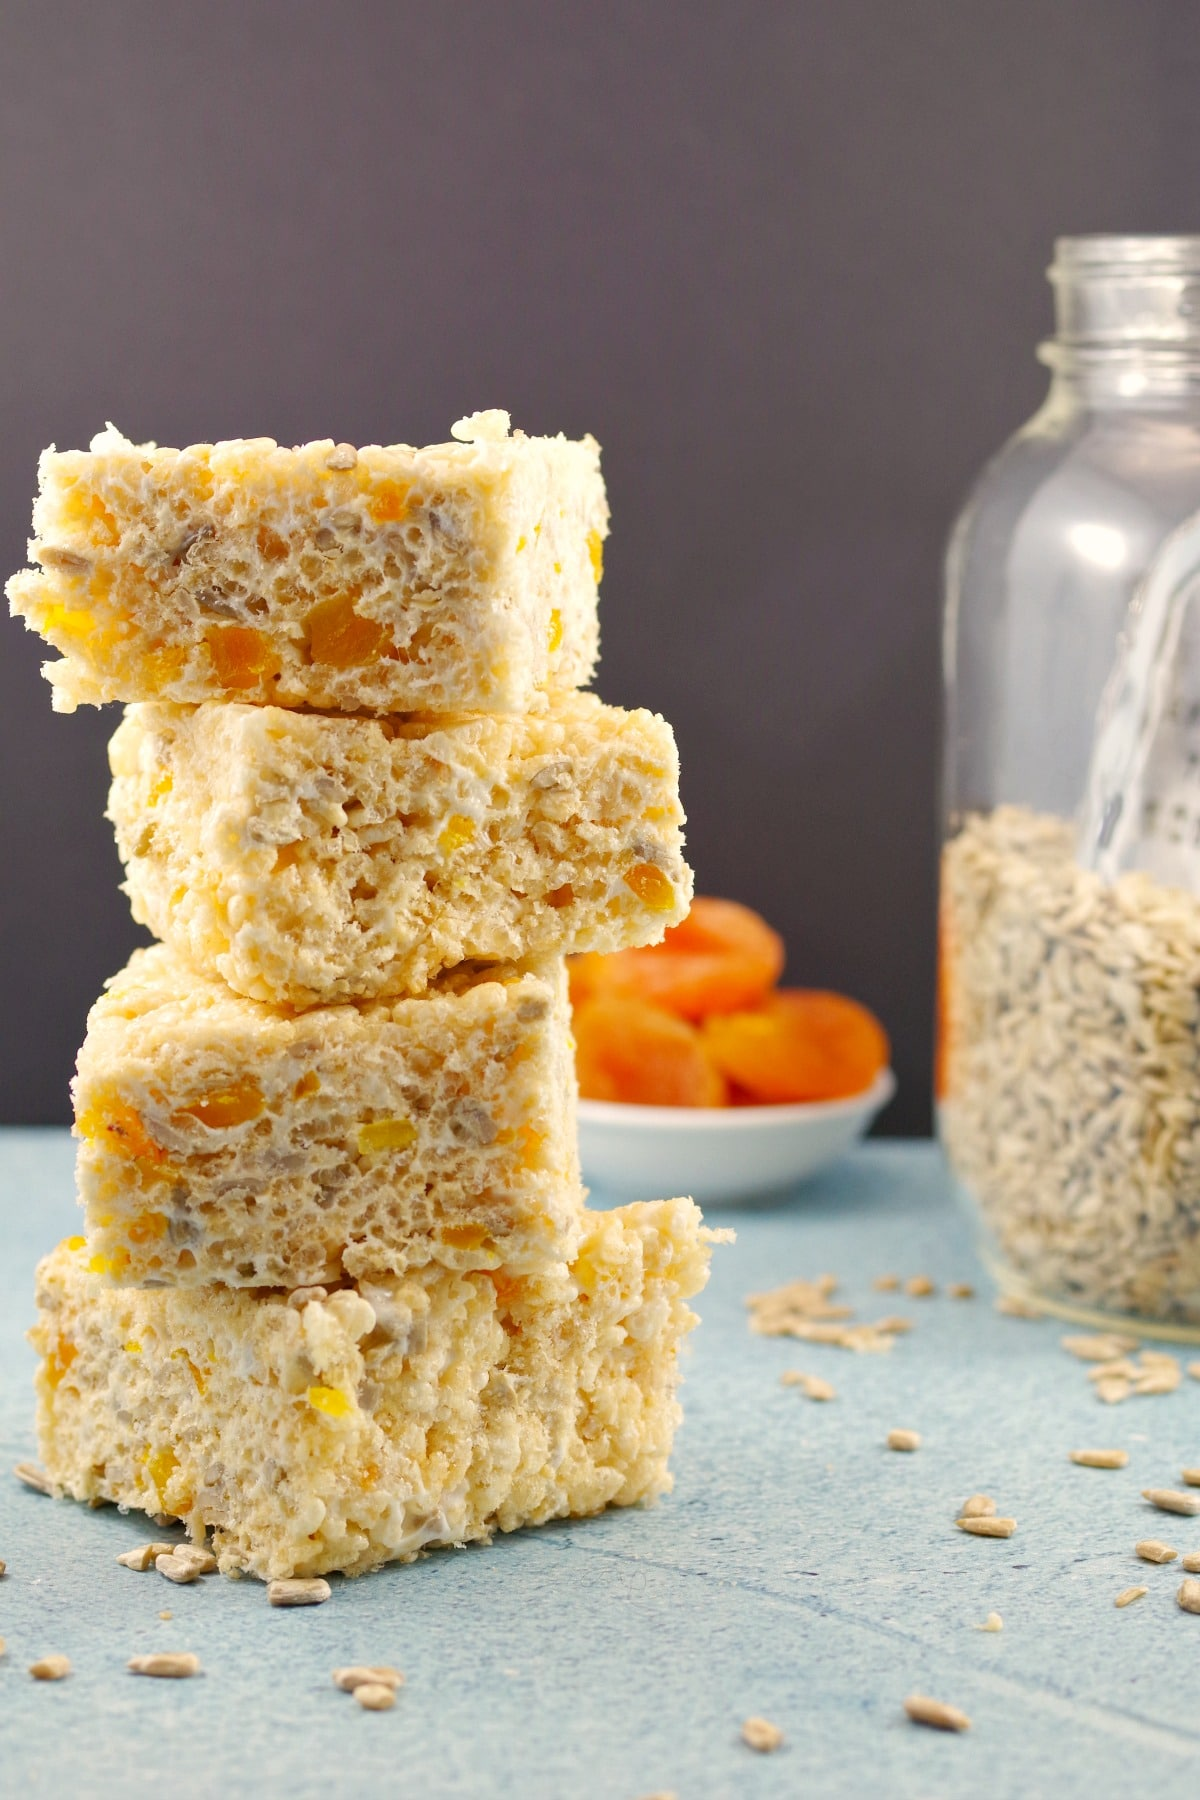 4 Apricot Sunflower Rice Krispie Treats stacked with apricots and sunflower seeds in background